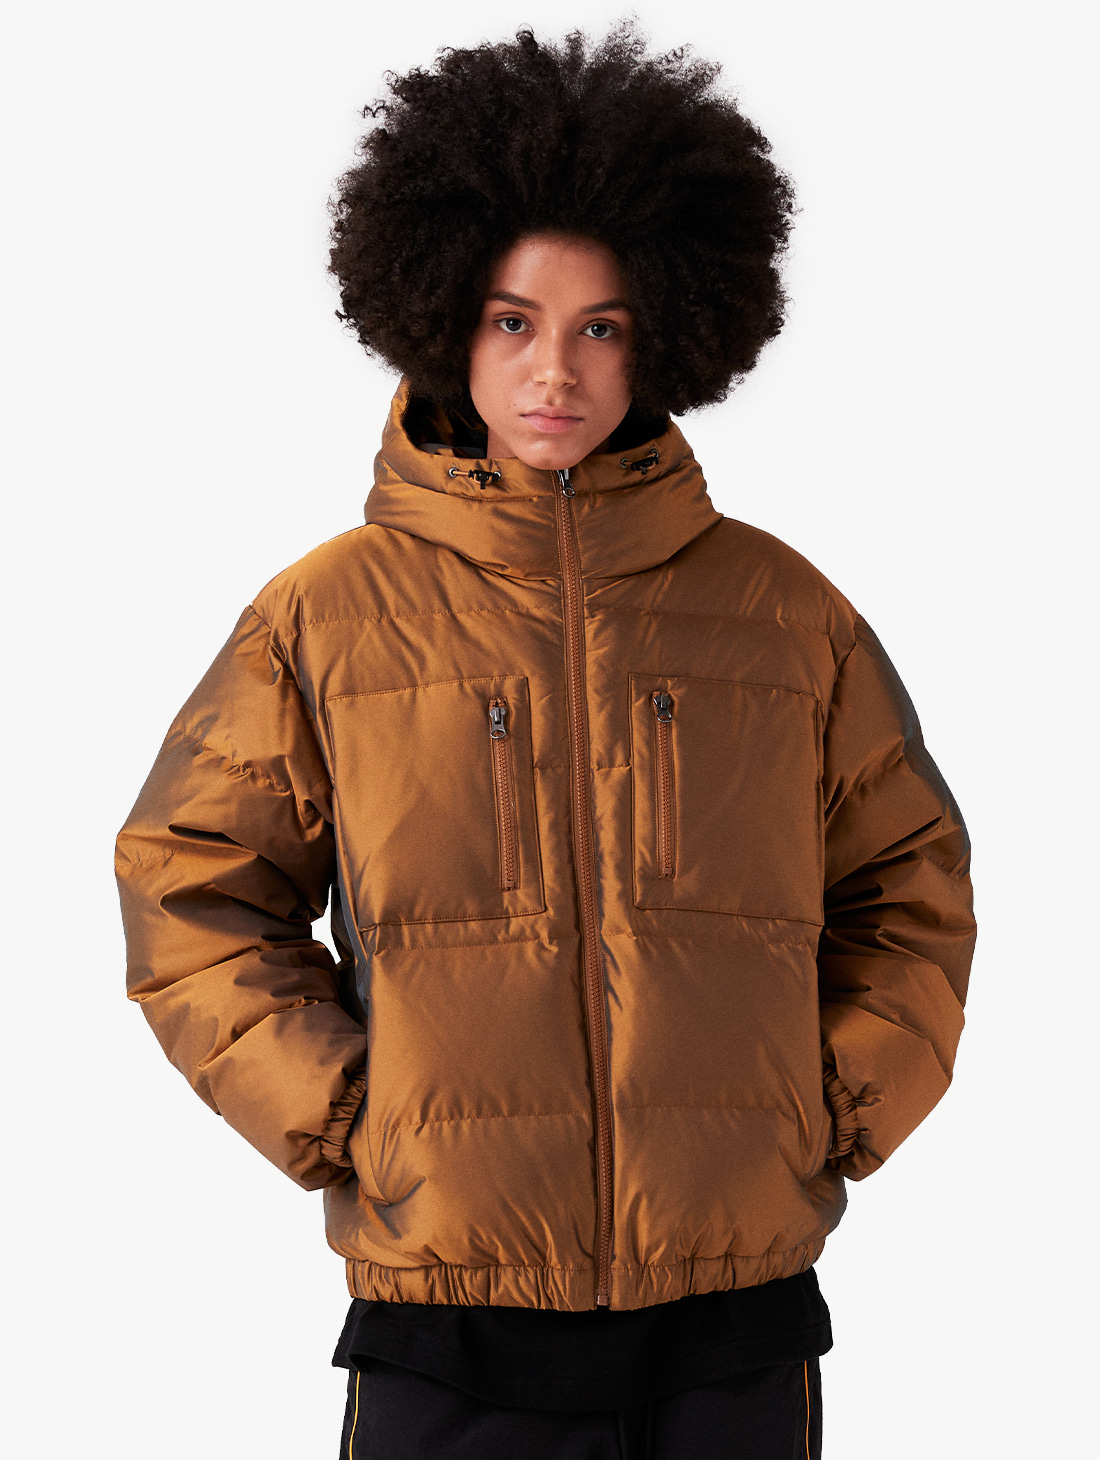 [SPECIAL GIFT] WWFC TWO TONE DOWN JACKET